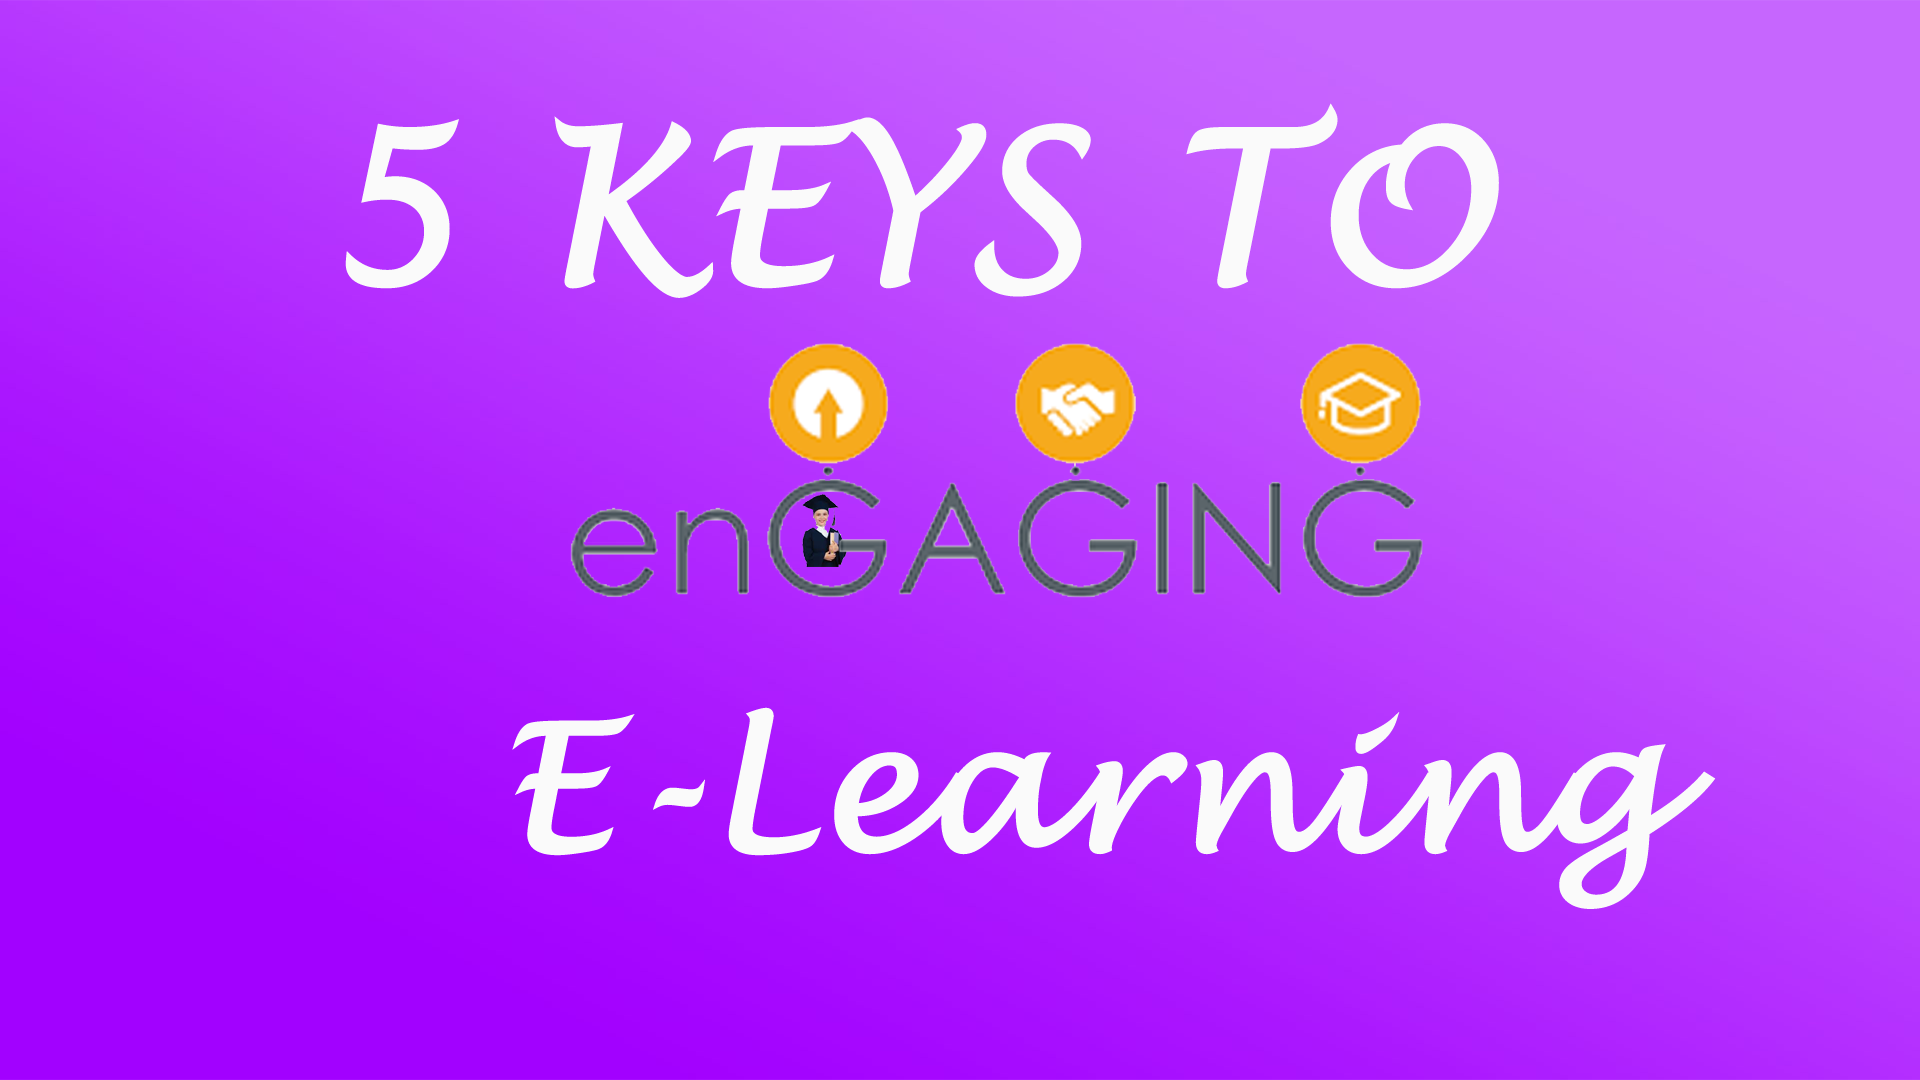 5 KEYS TO ENGAGING E-LEARNING